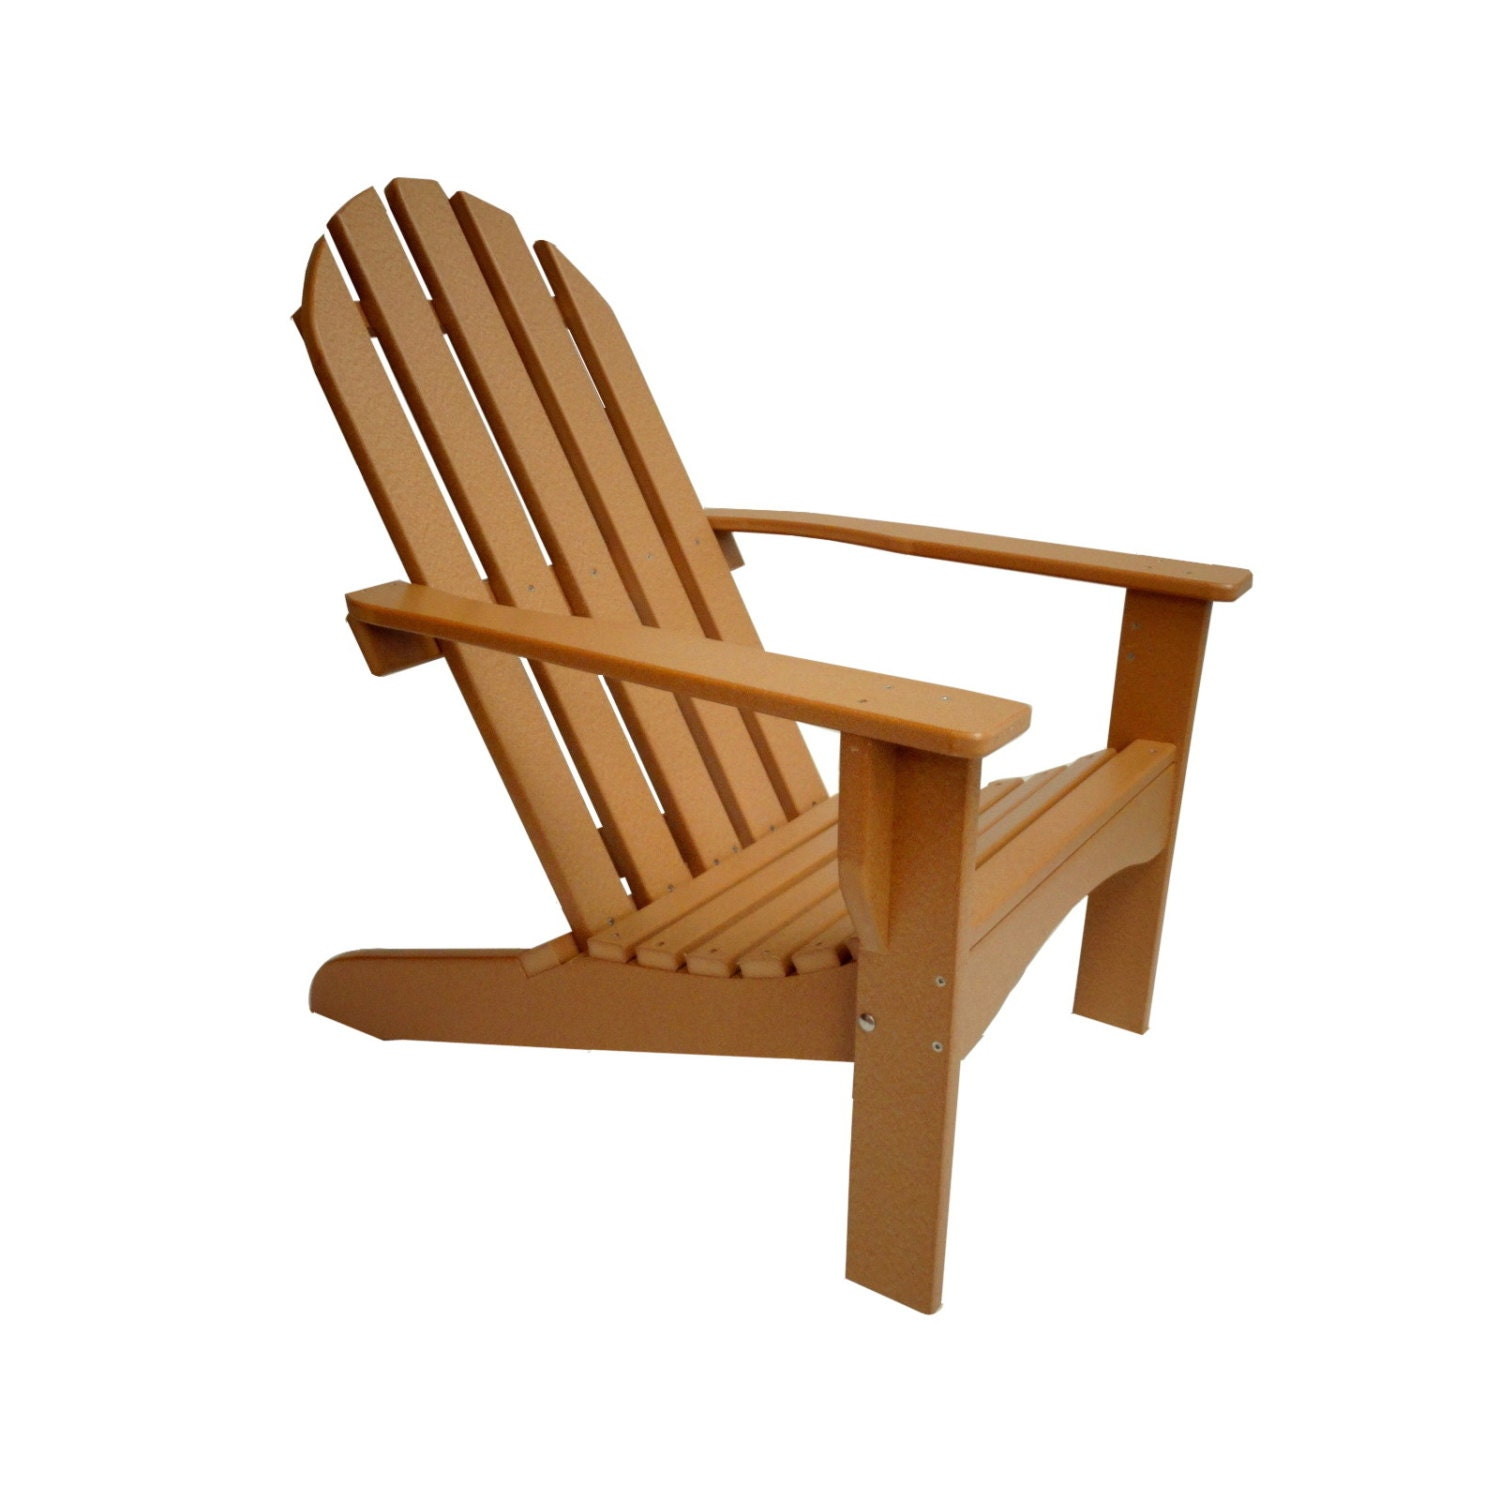 Adirondack chair casual style made from poly wood Composite adirondack chairs